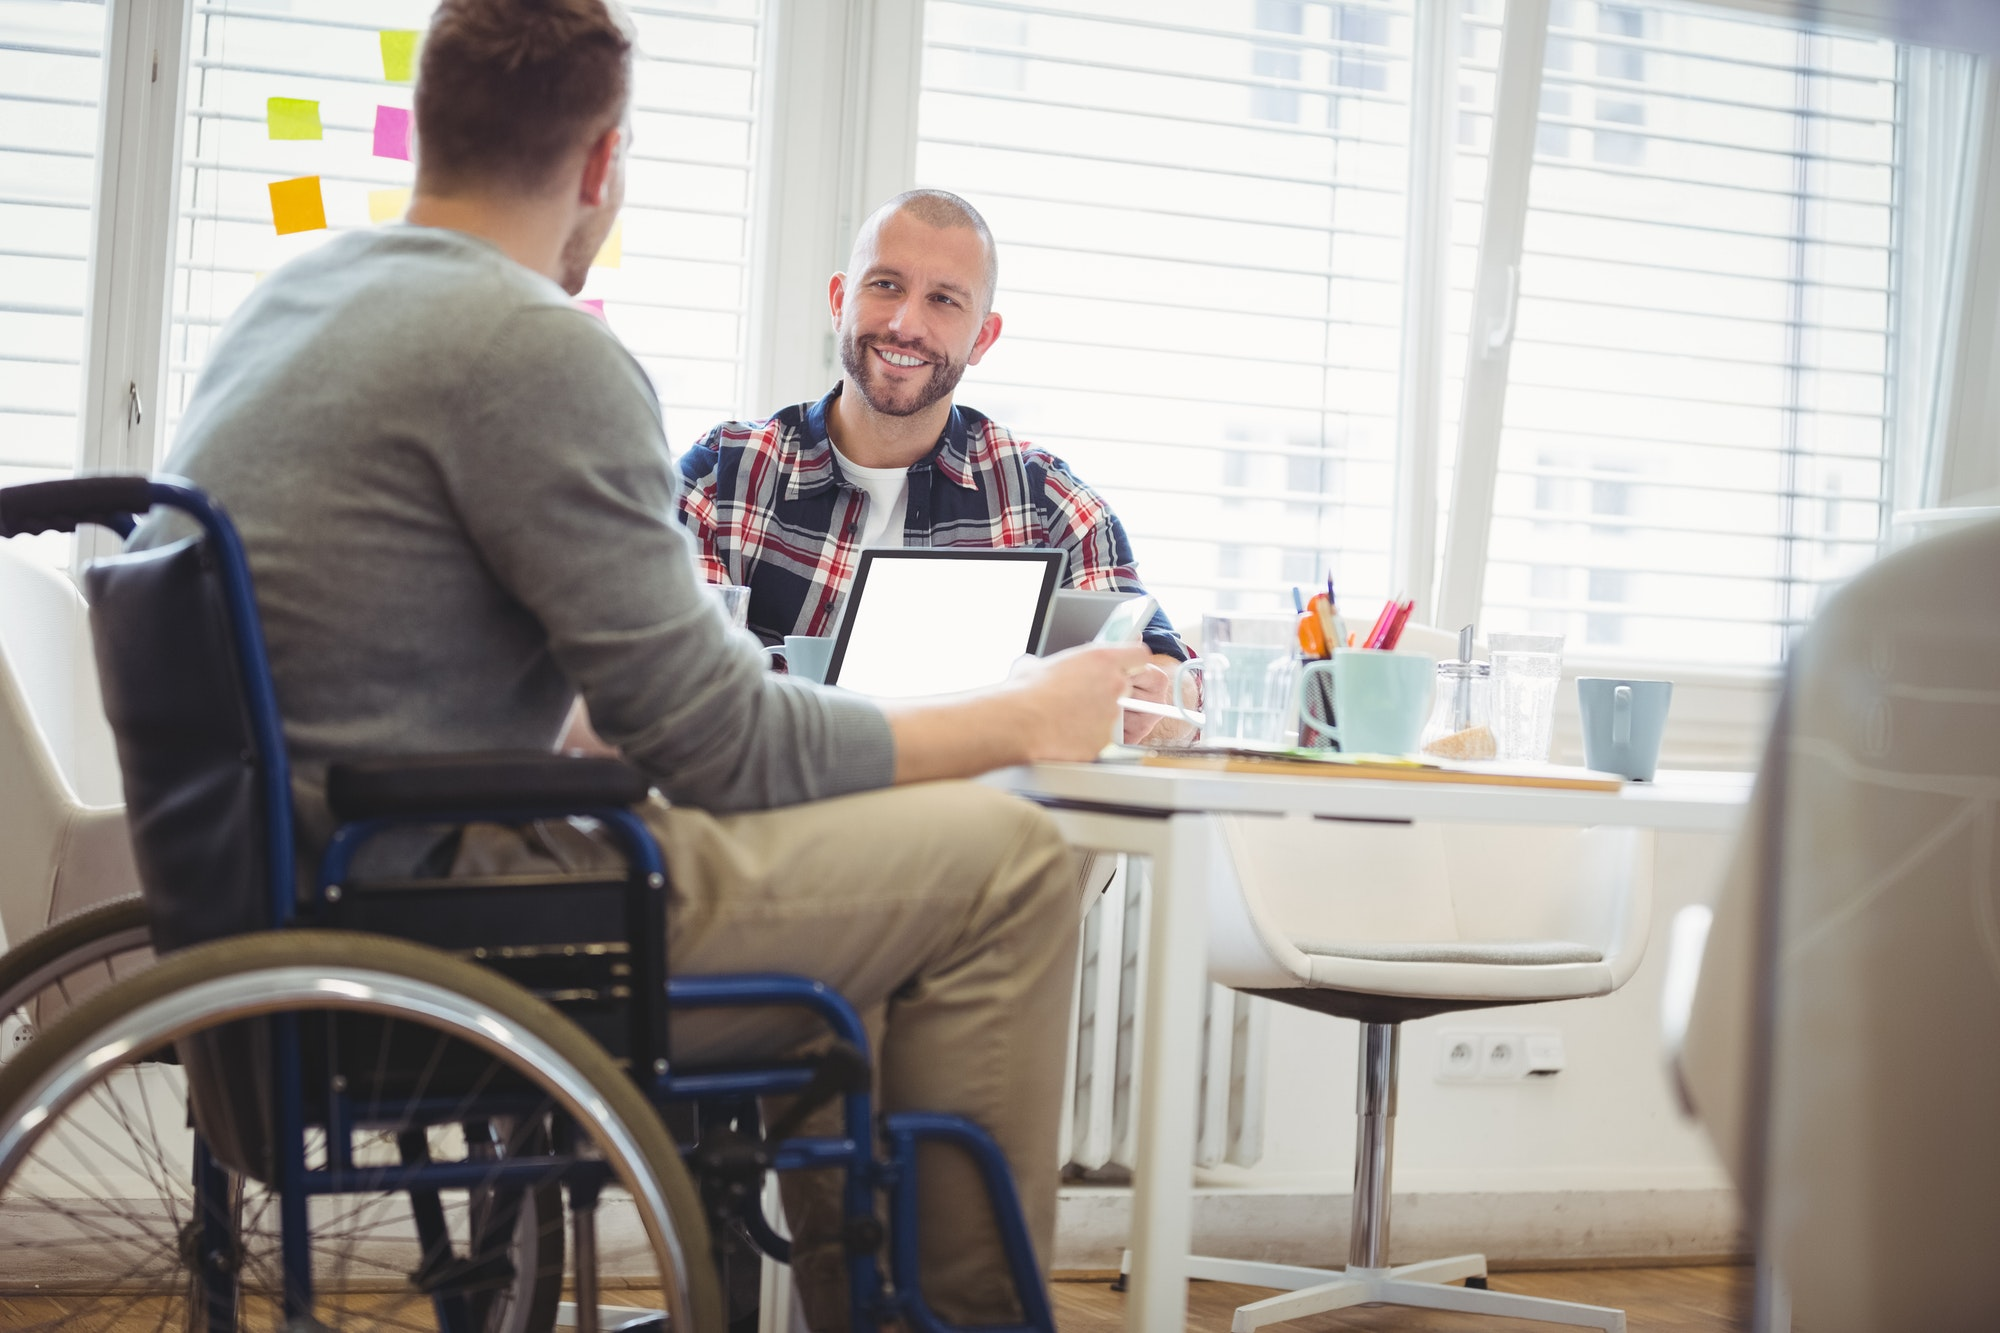 Job search tips on how to discuss disability in resume